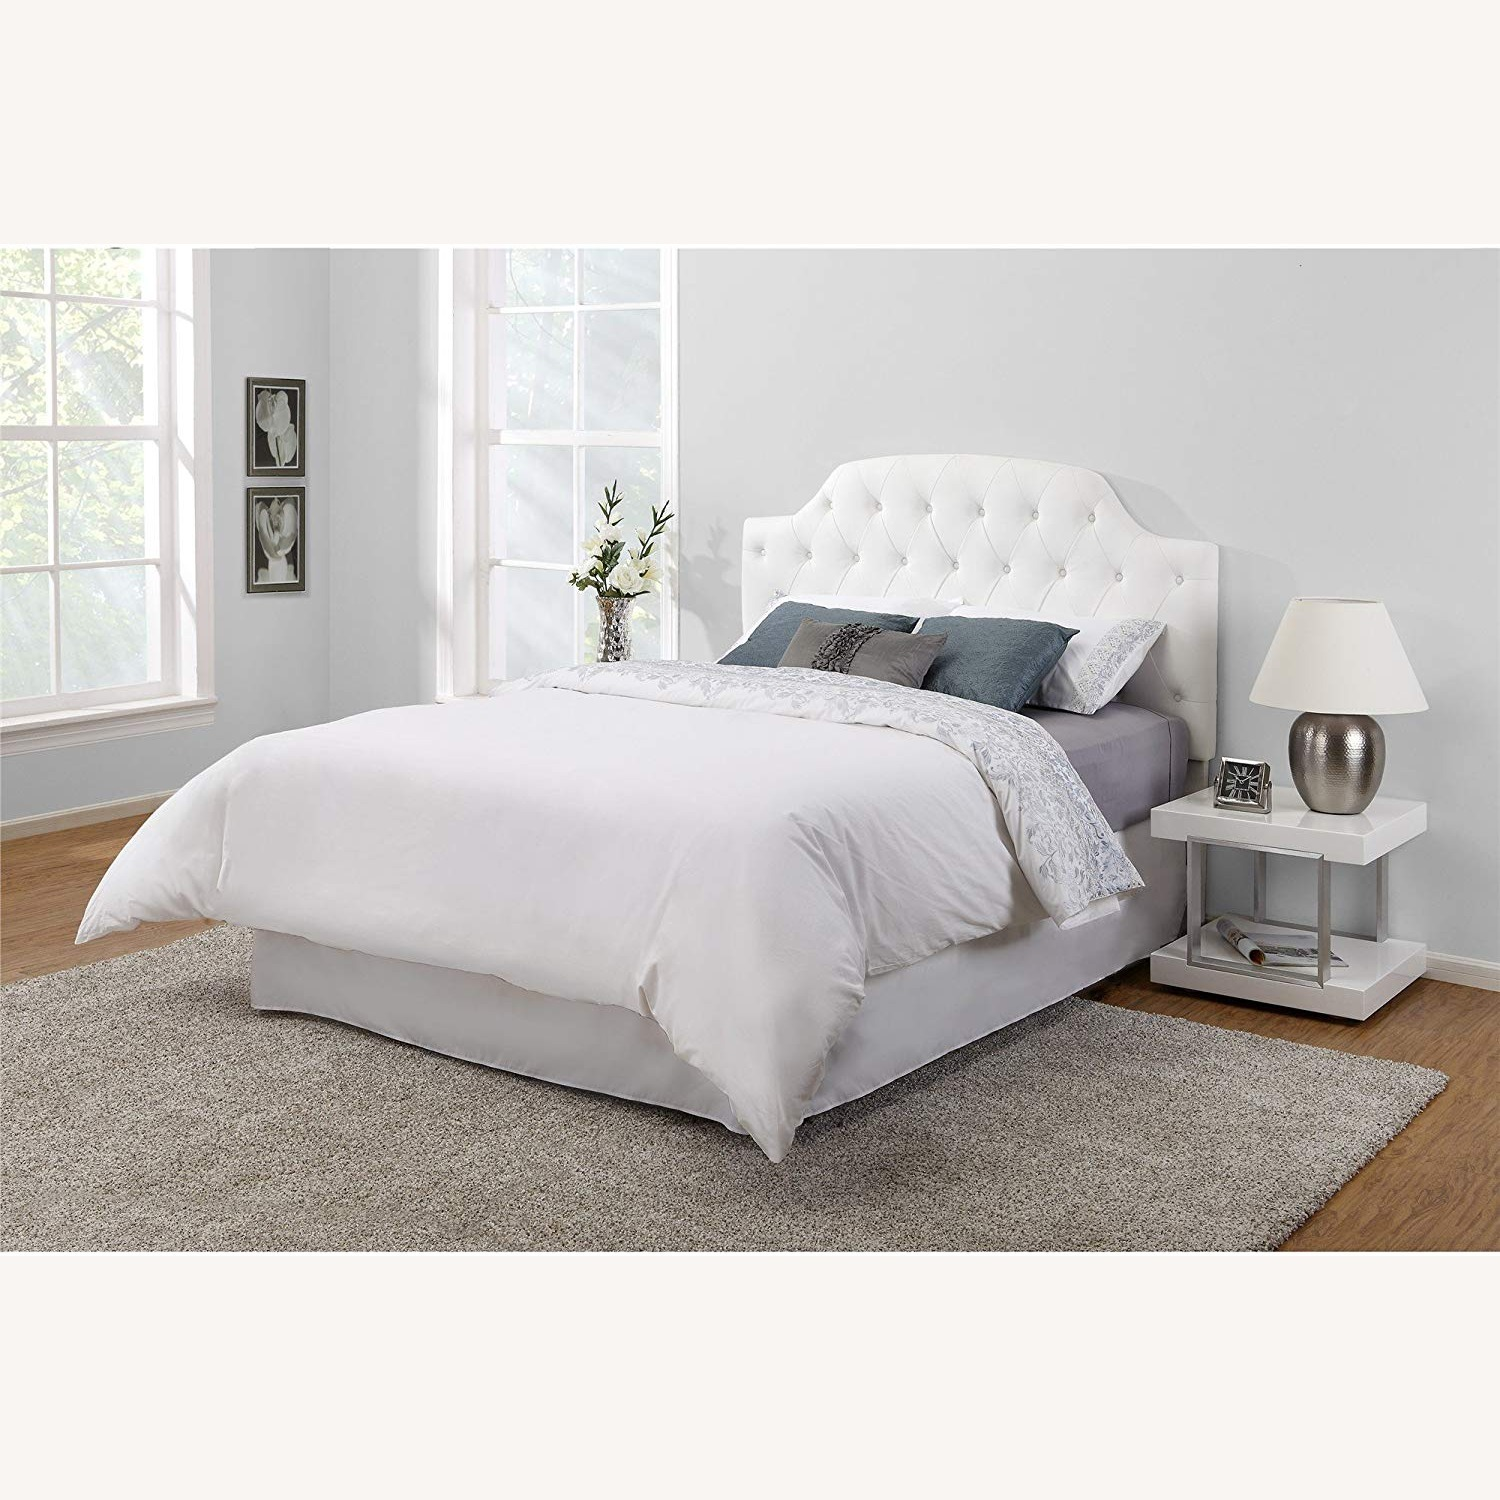 DHP Queen Faux Leather Tufted Headboard - image-4